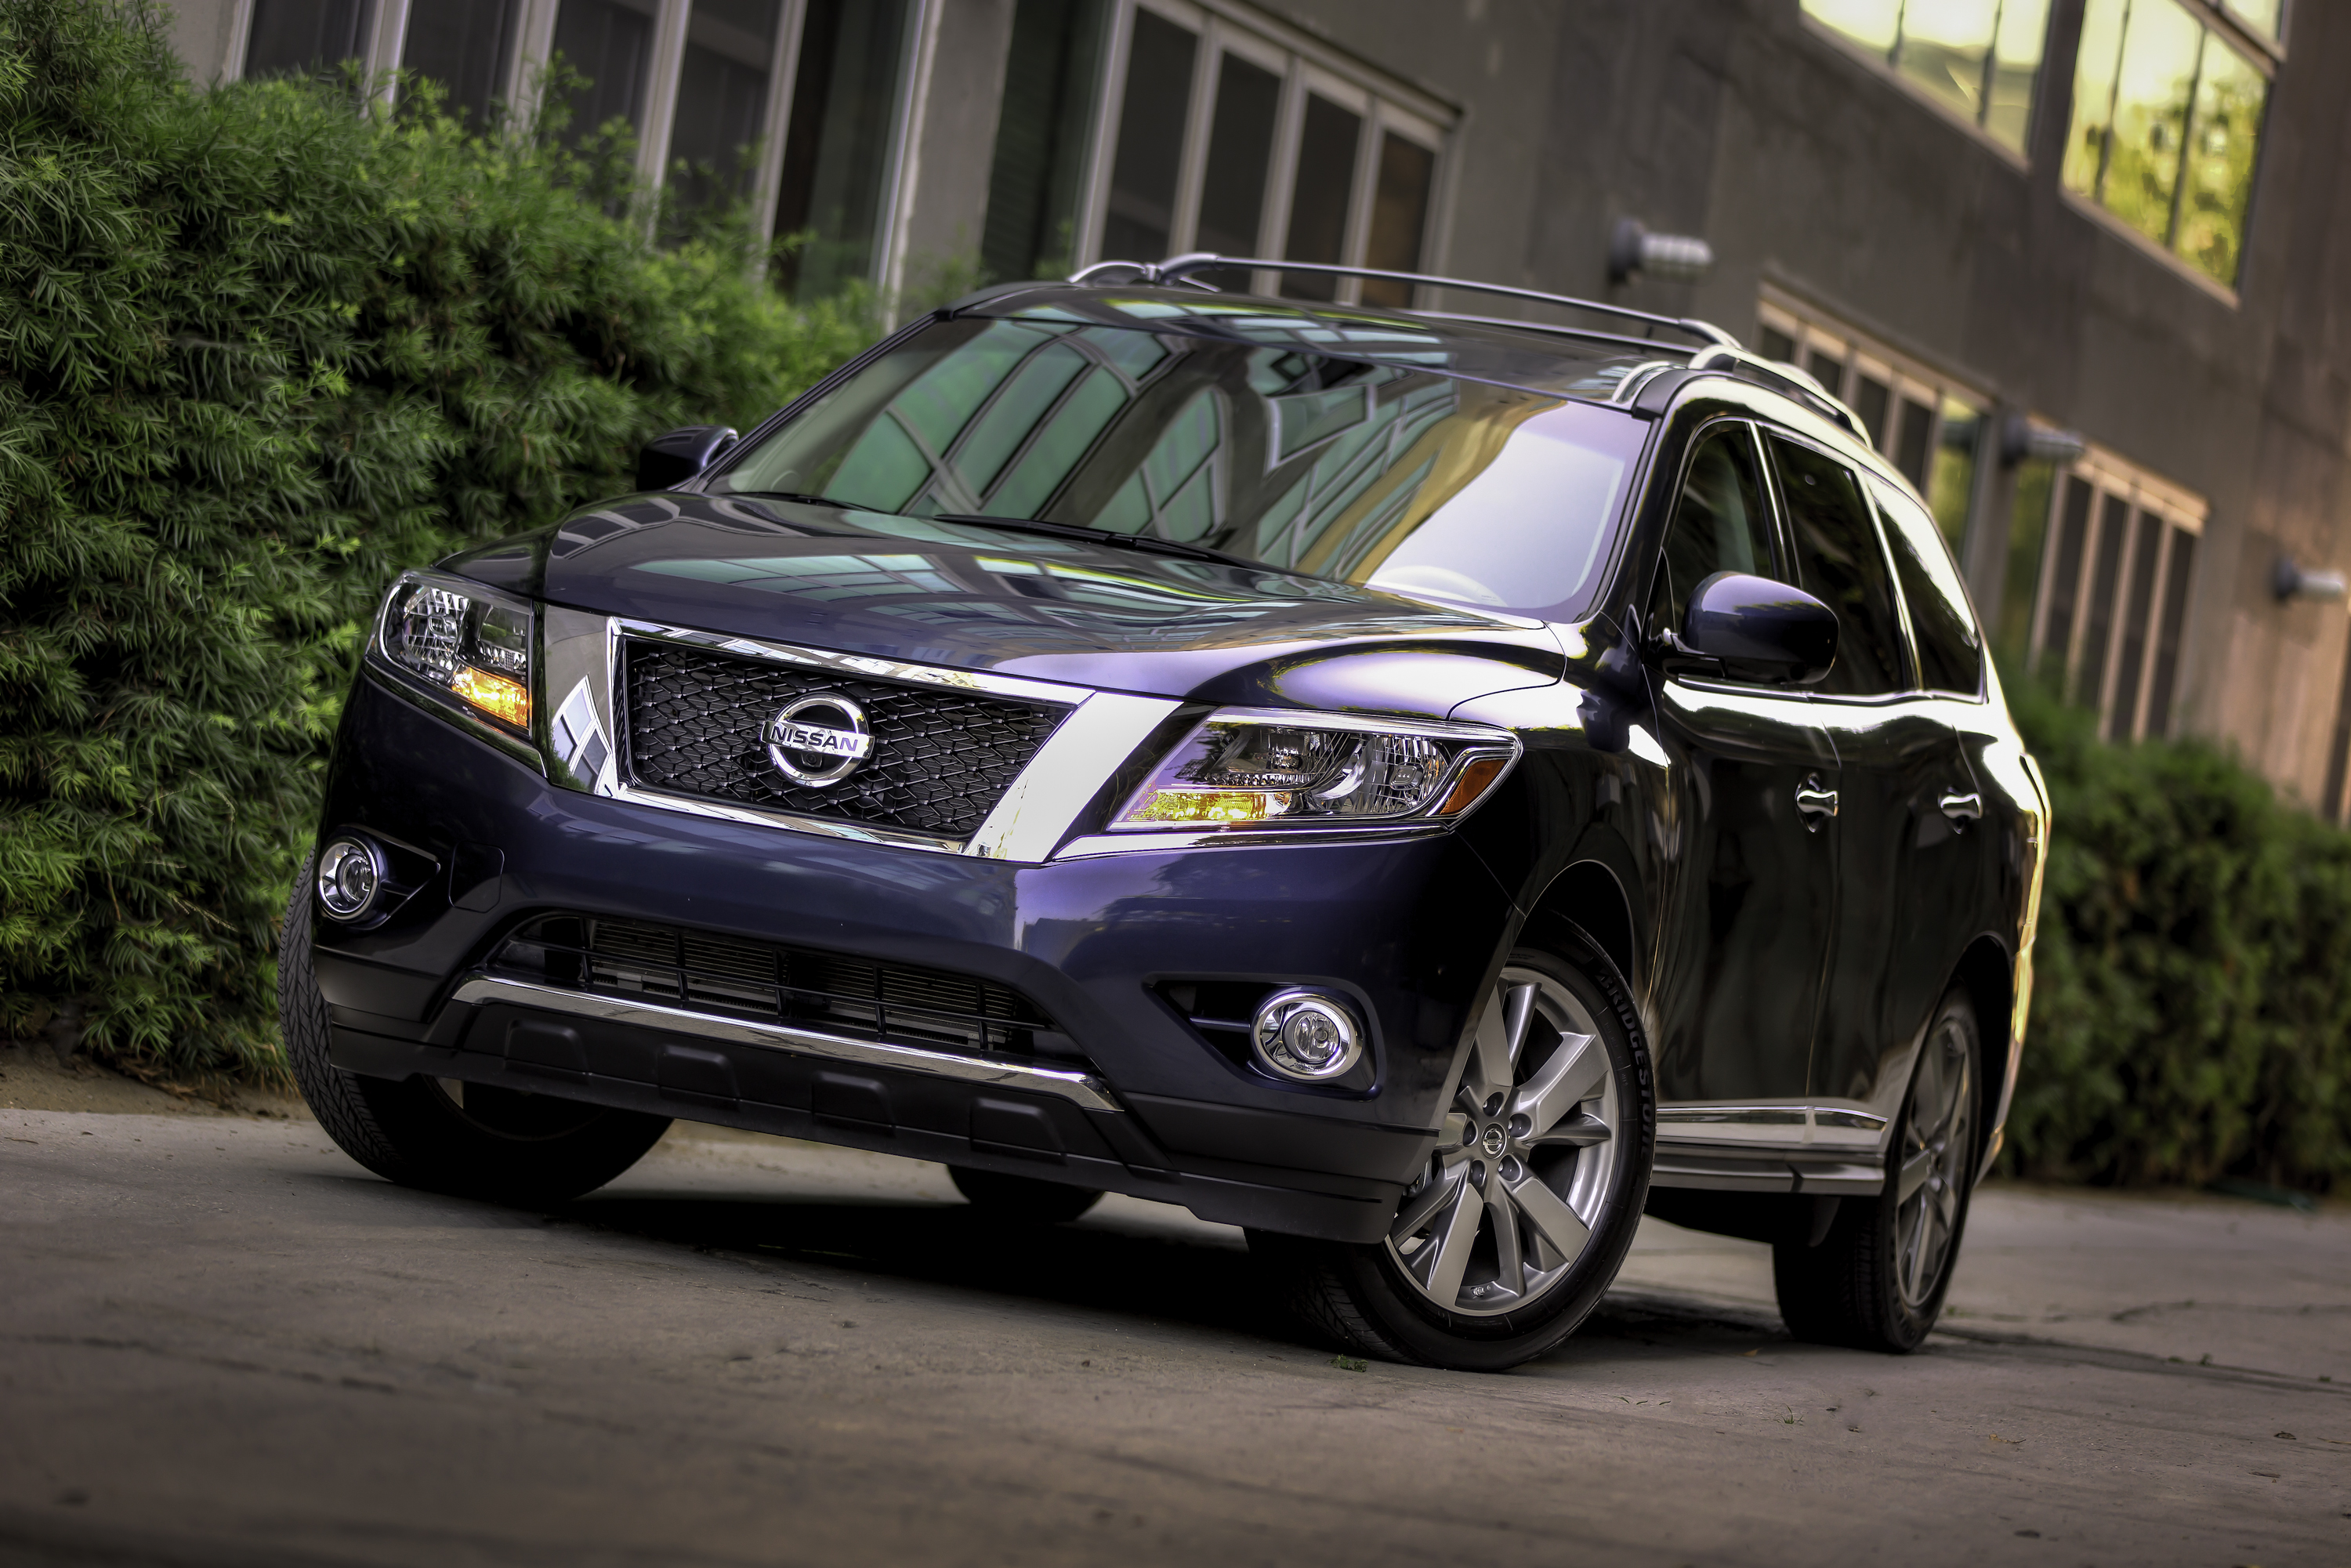 Nissan Revs Up the Dealership Experience with Microsoft s Kinect for